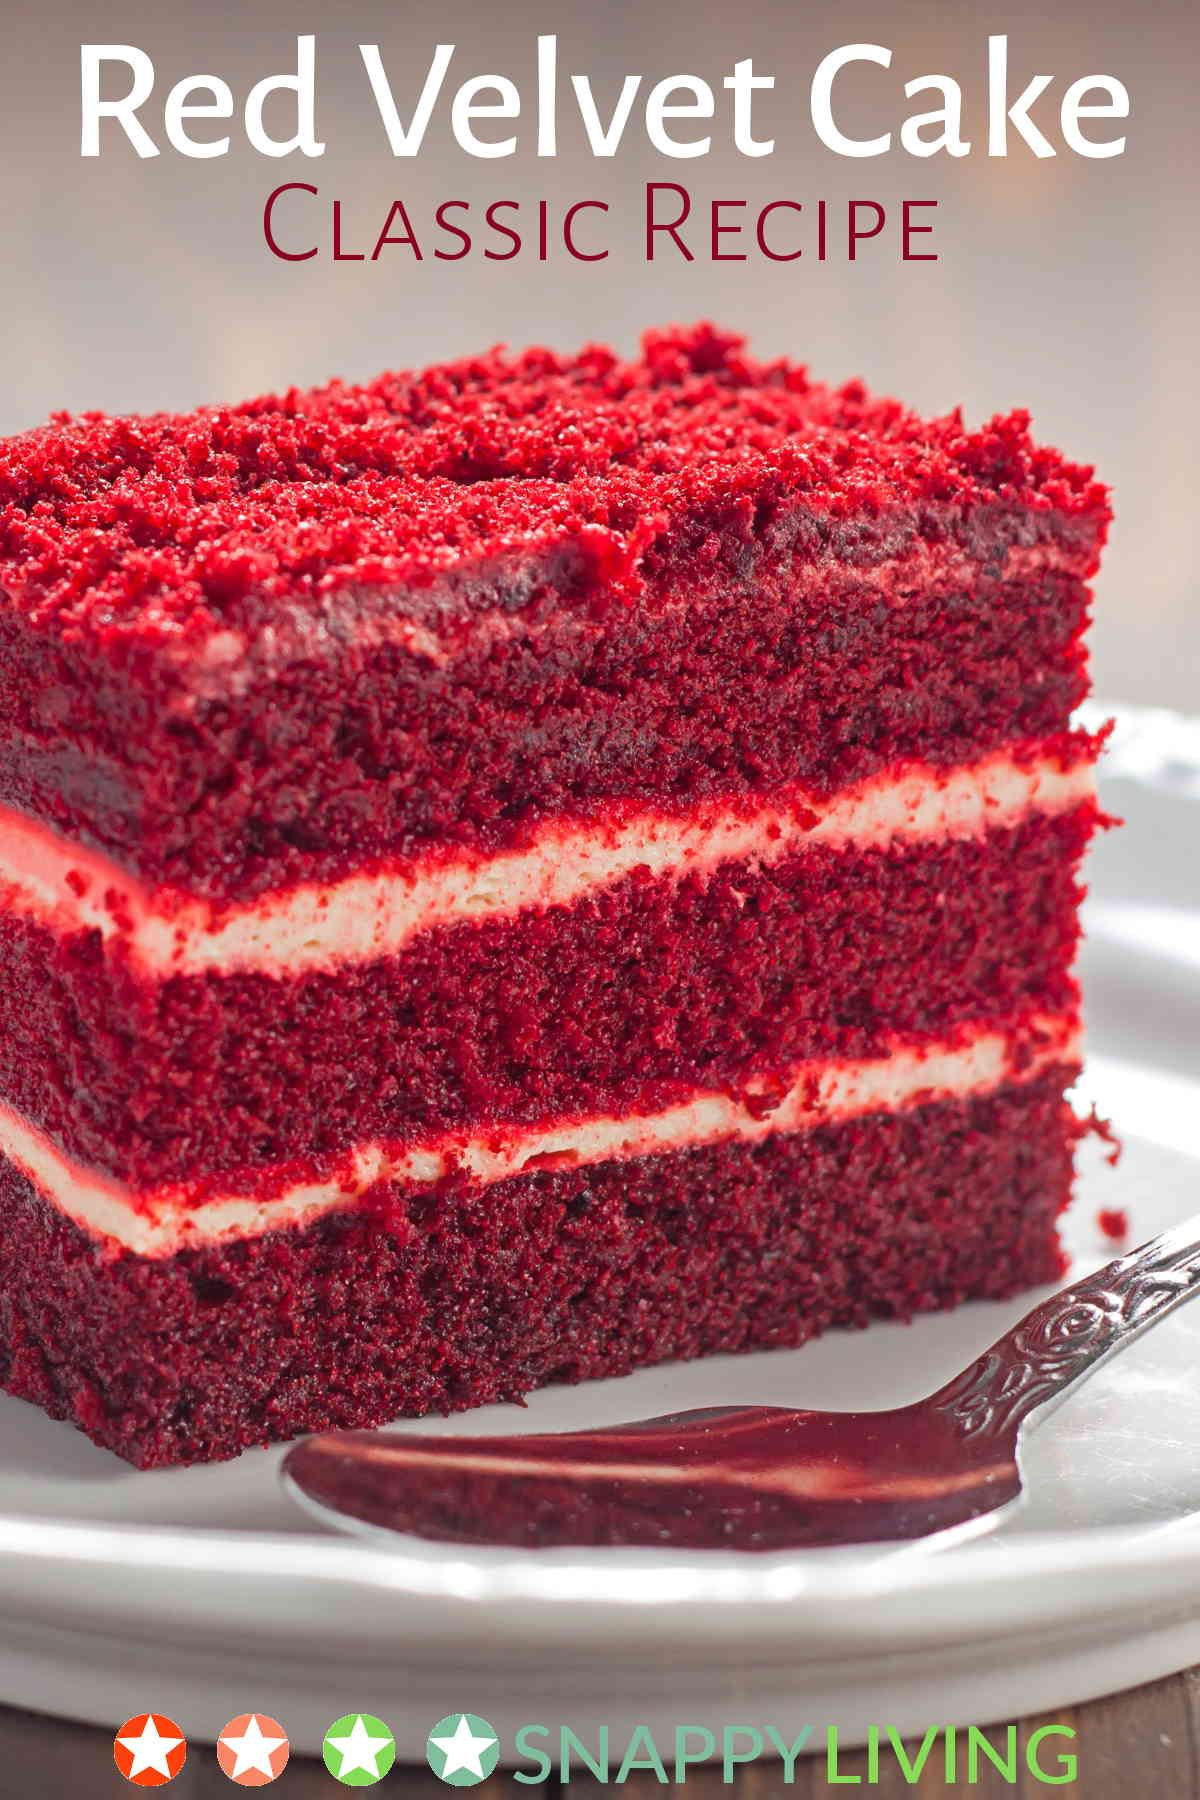 My Favorite Red Velvet Cake Recipe Velvet Cake Recipes Red Velvet Cake Recipe Cake Recipes